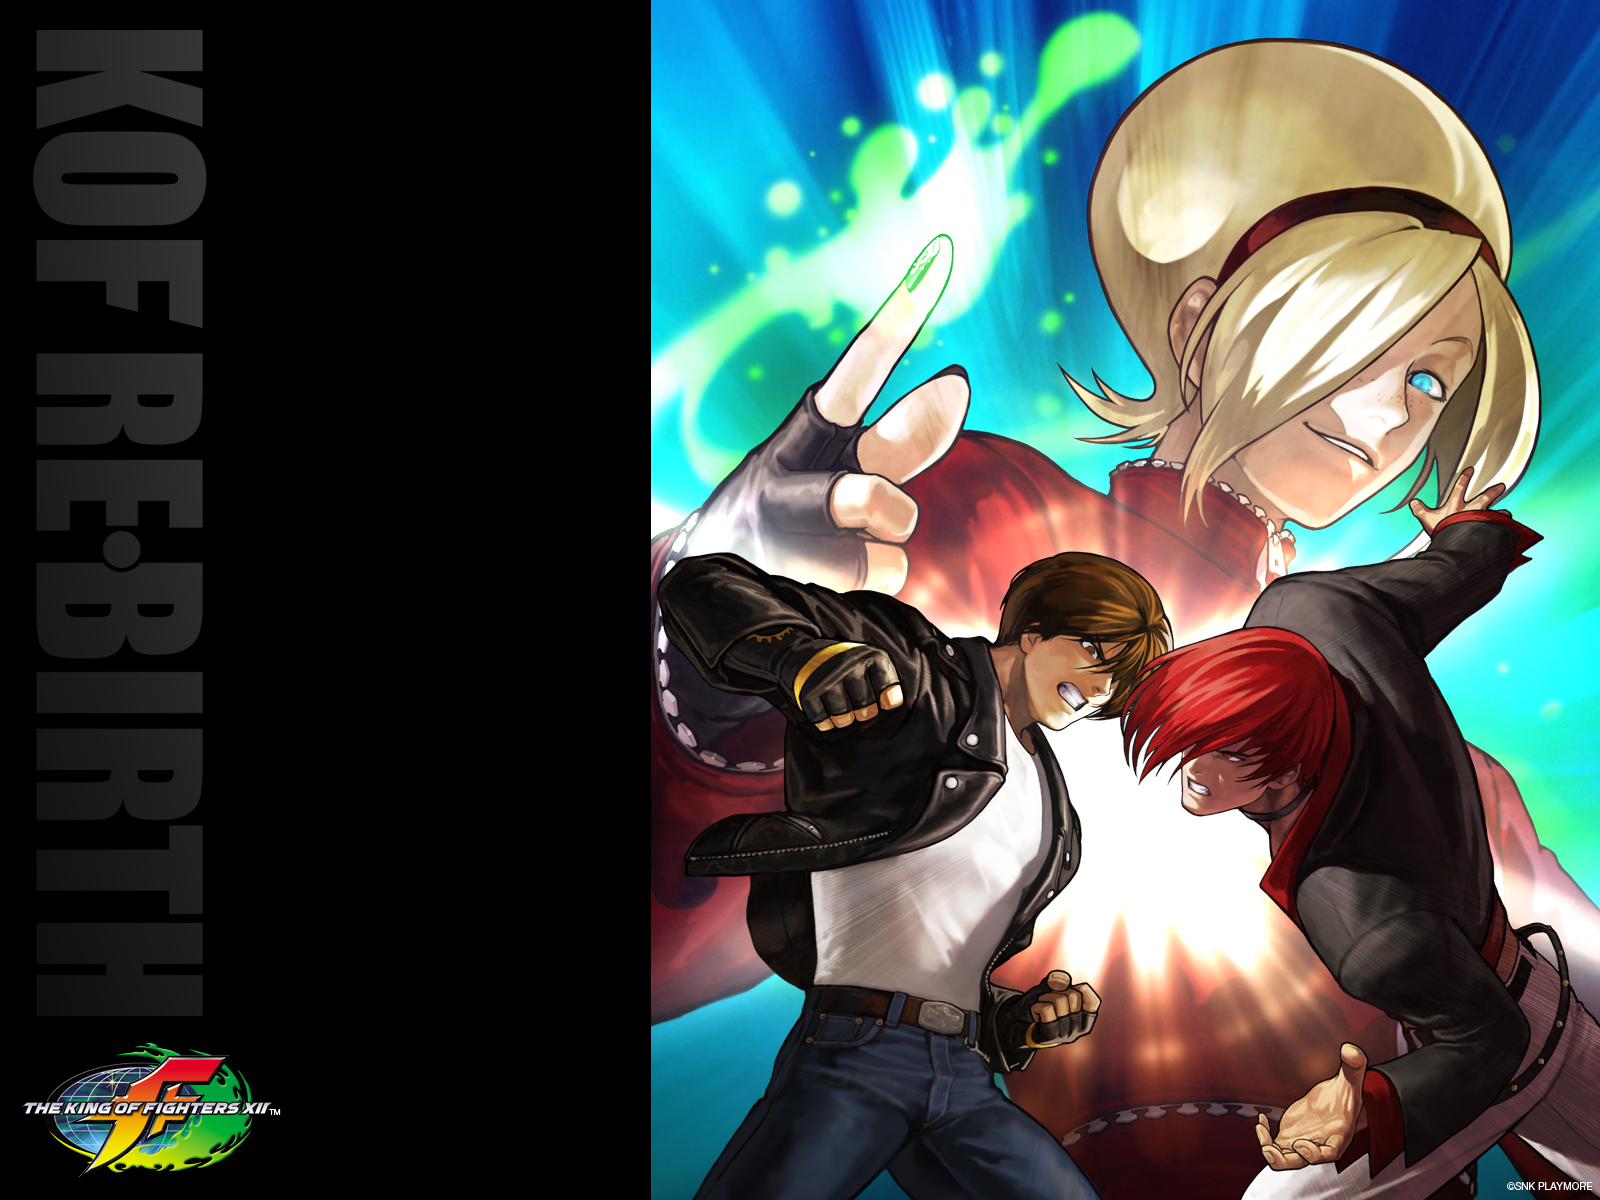 Iori Yagami Wallpaper 3d The King Of Fighters Images Kof Xii Kyo V Iori Hd